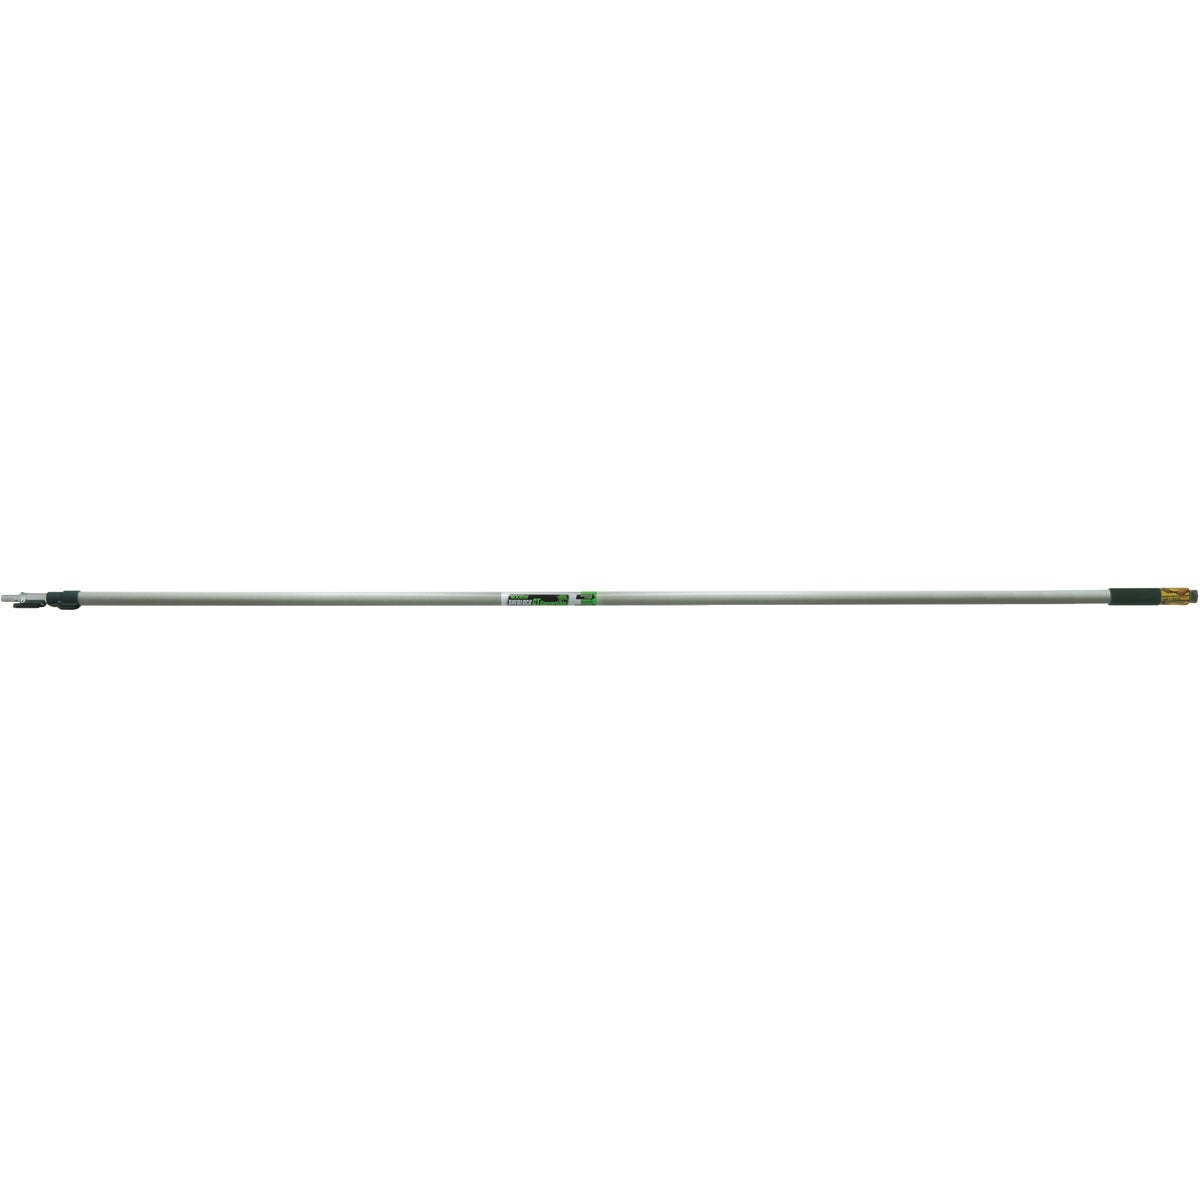 8-16 CONVRTBLE EXTN POLE - R096 by Wooster Brush Co